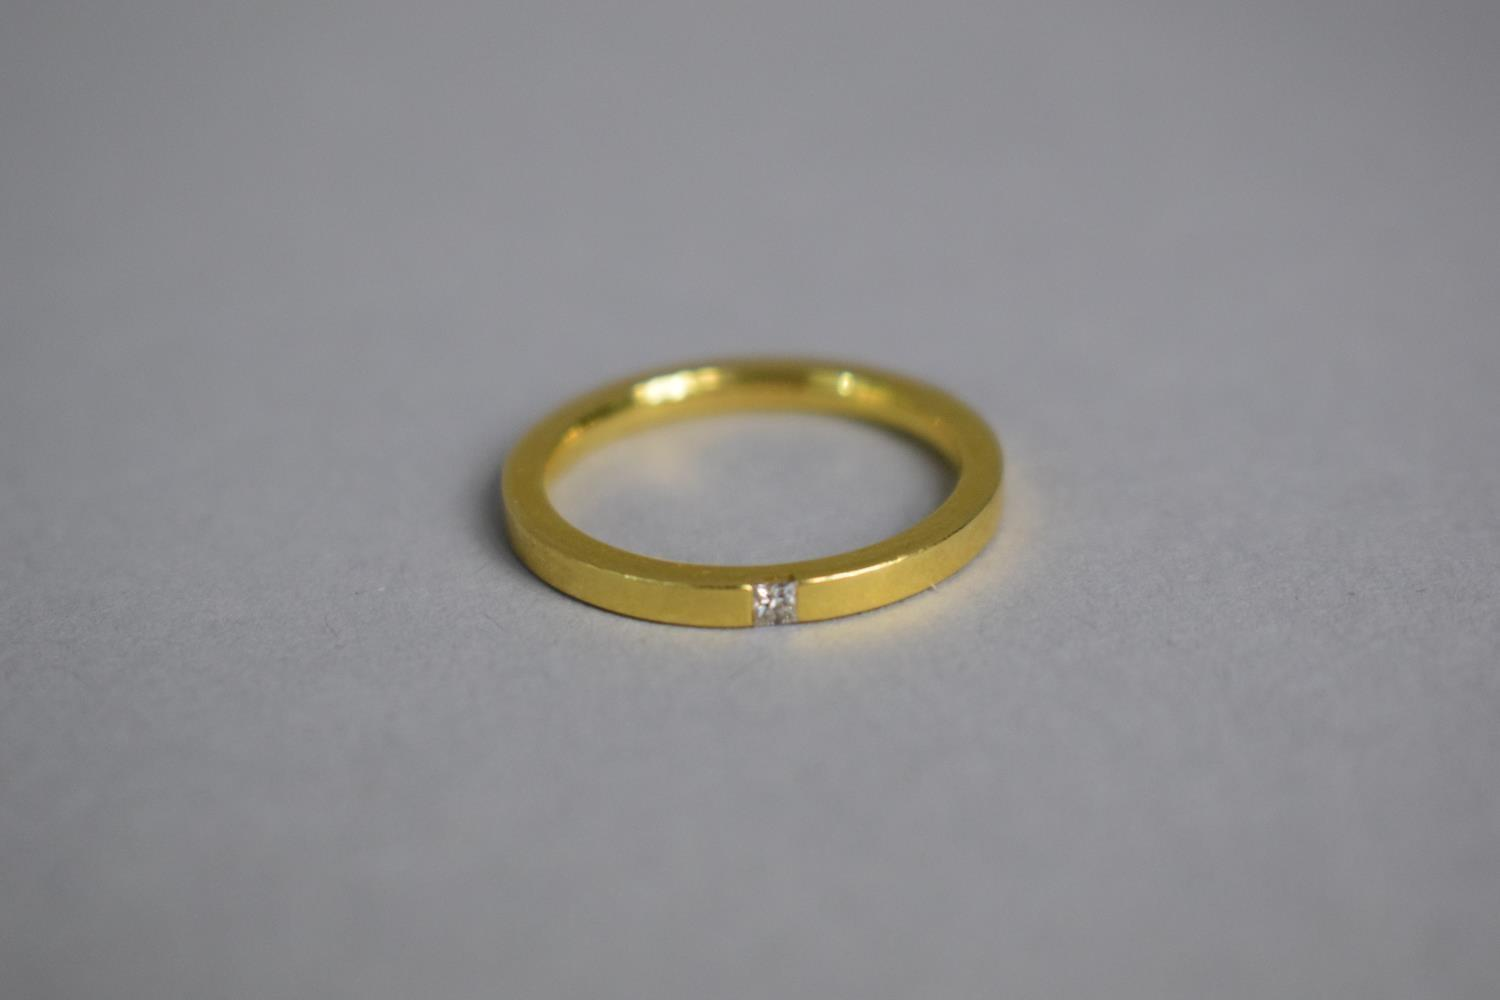 Lot 311 - A Contemporary 18ct Gold and Diamond Solitaire Ring, The Small Square Diamond Flush Set on the Band.